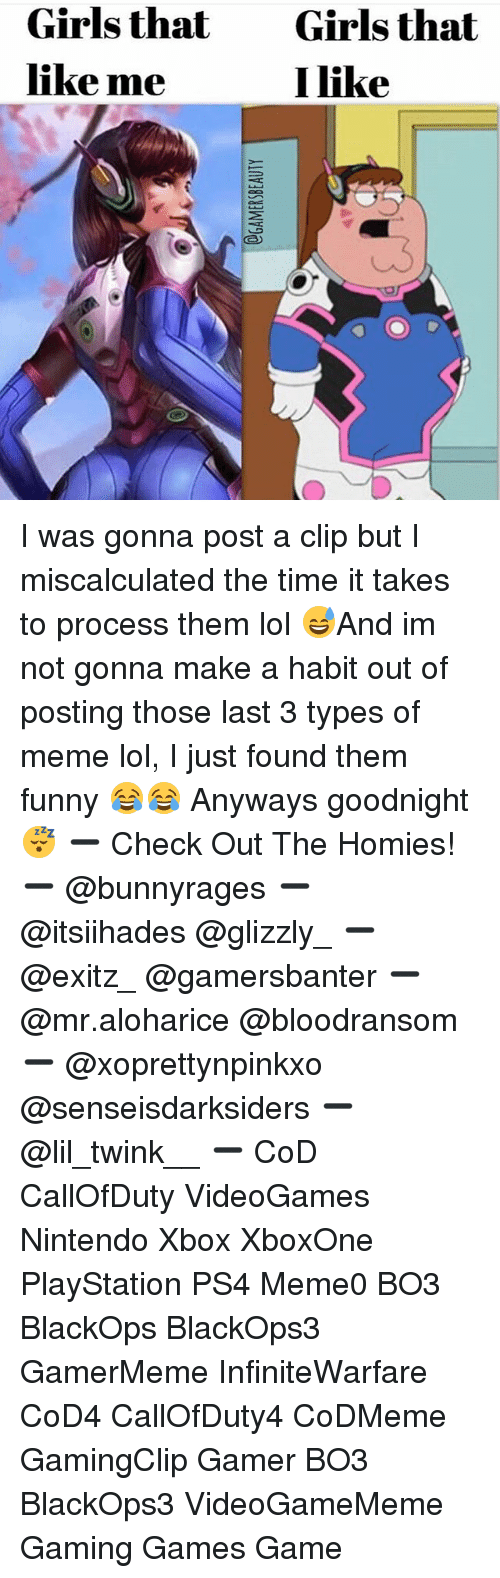 Habitate: Girls that  like me  Girls that  I like I was gonna post a clip but I miscalculated the time it takes to process them lol 😅And im not gonna make a habit out of posting those last 3 types of meme lol, I just found them funny 😂😂 Anyways goodnight 😴 ➖ Check Out The Homies! ➖ @bunnyrages ➖ @itsiihades @glizzly_ ➖ @exitz_ @gamersbanter ➖ @mr.aloharice @bloodransom ➖ @xoprettynpinkxo @senseisdarksiders ➖ @lil_twink__ ➖ CoD CallOfDuty VideoGames Nintendo Xbox XboxOne PlayStation PS4 Meme0 BO3 BlackOps BlackOps3 GamerMeme InfiniteWarfare CoD4 CallOfDuty4 CoDMeme GamingClip Gamer BO3 BlackOps3 VideoGameMeme Gaming Games Game